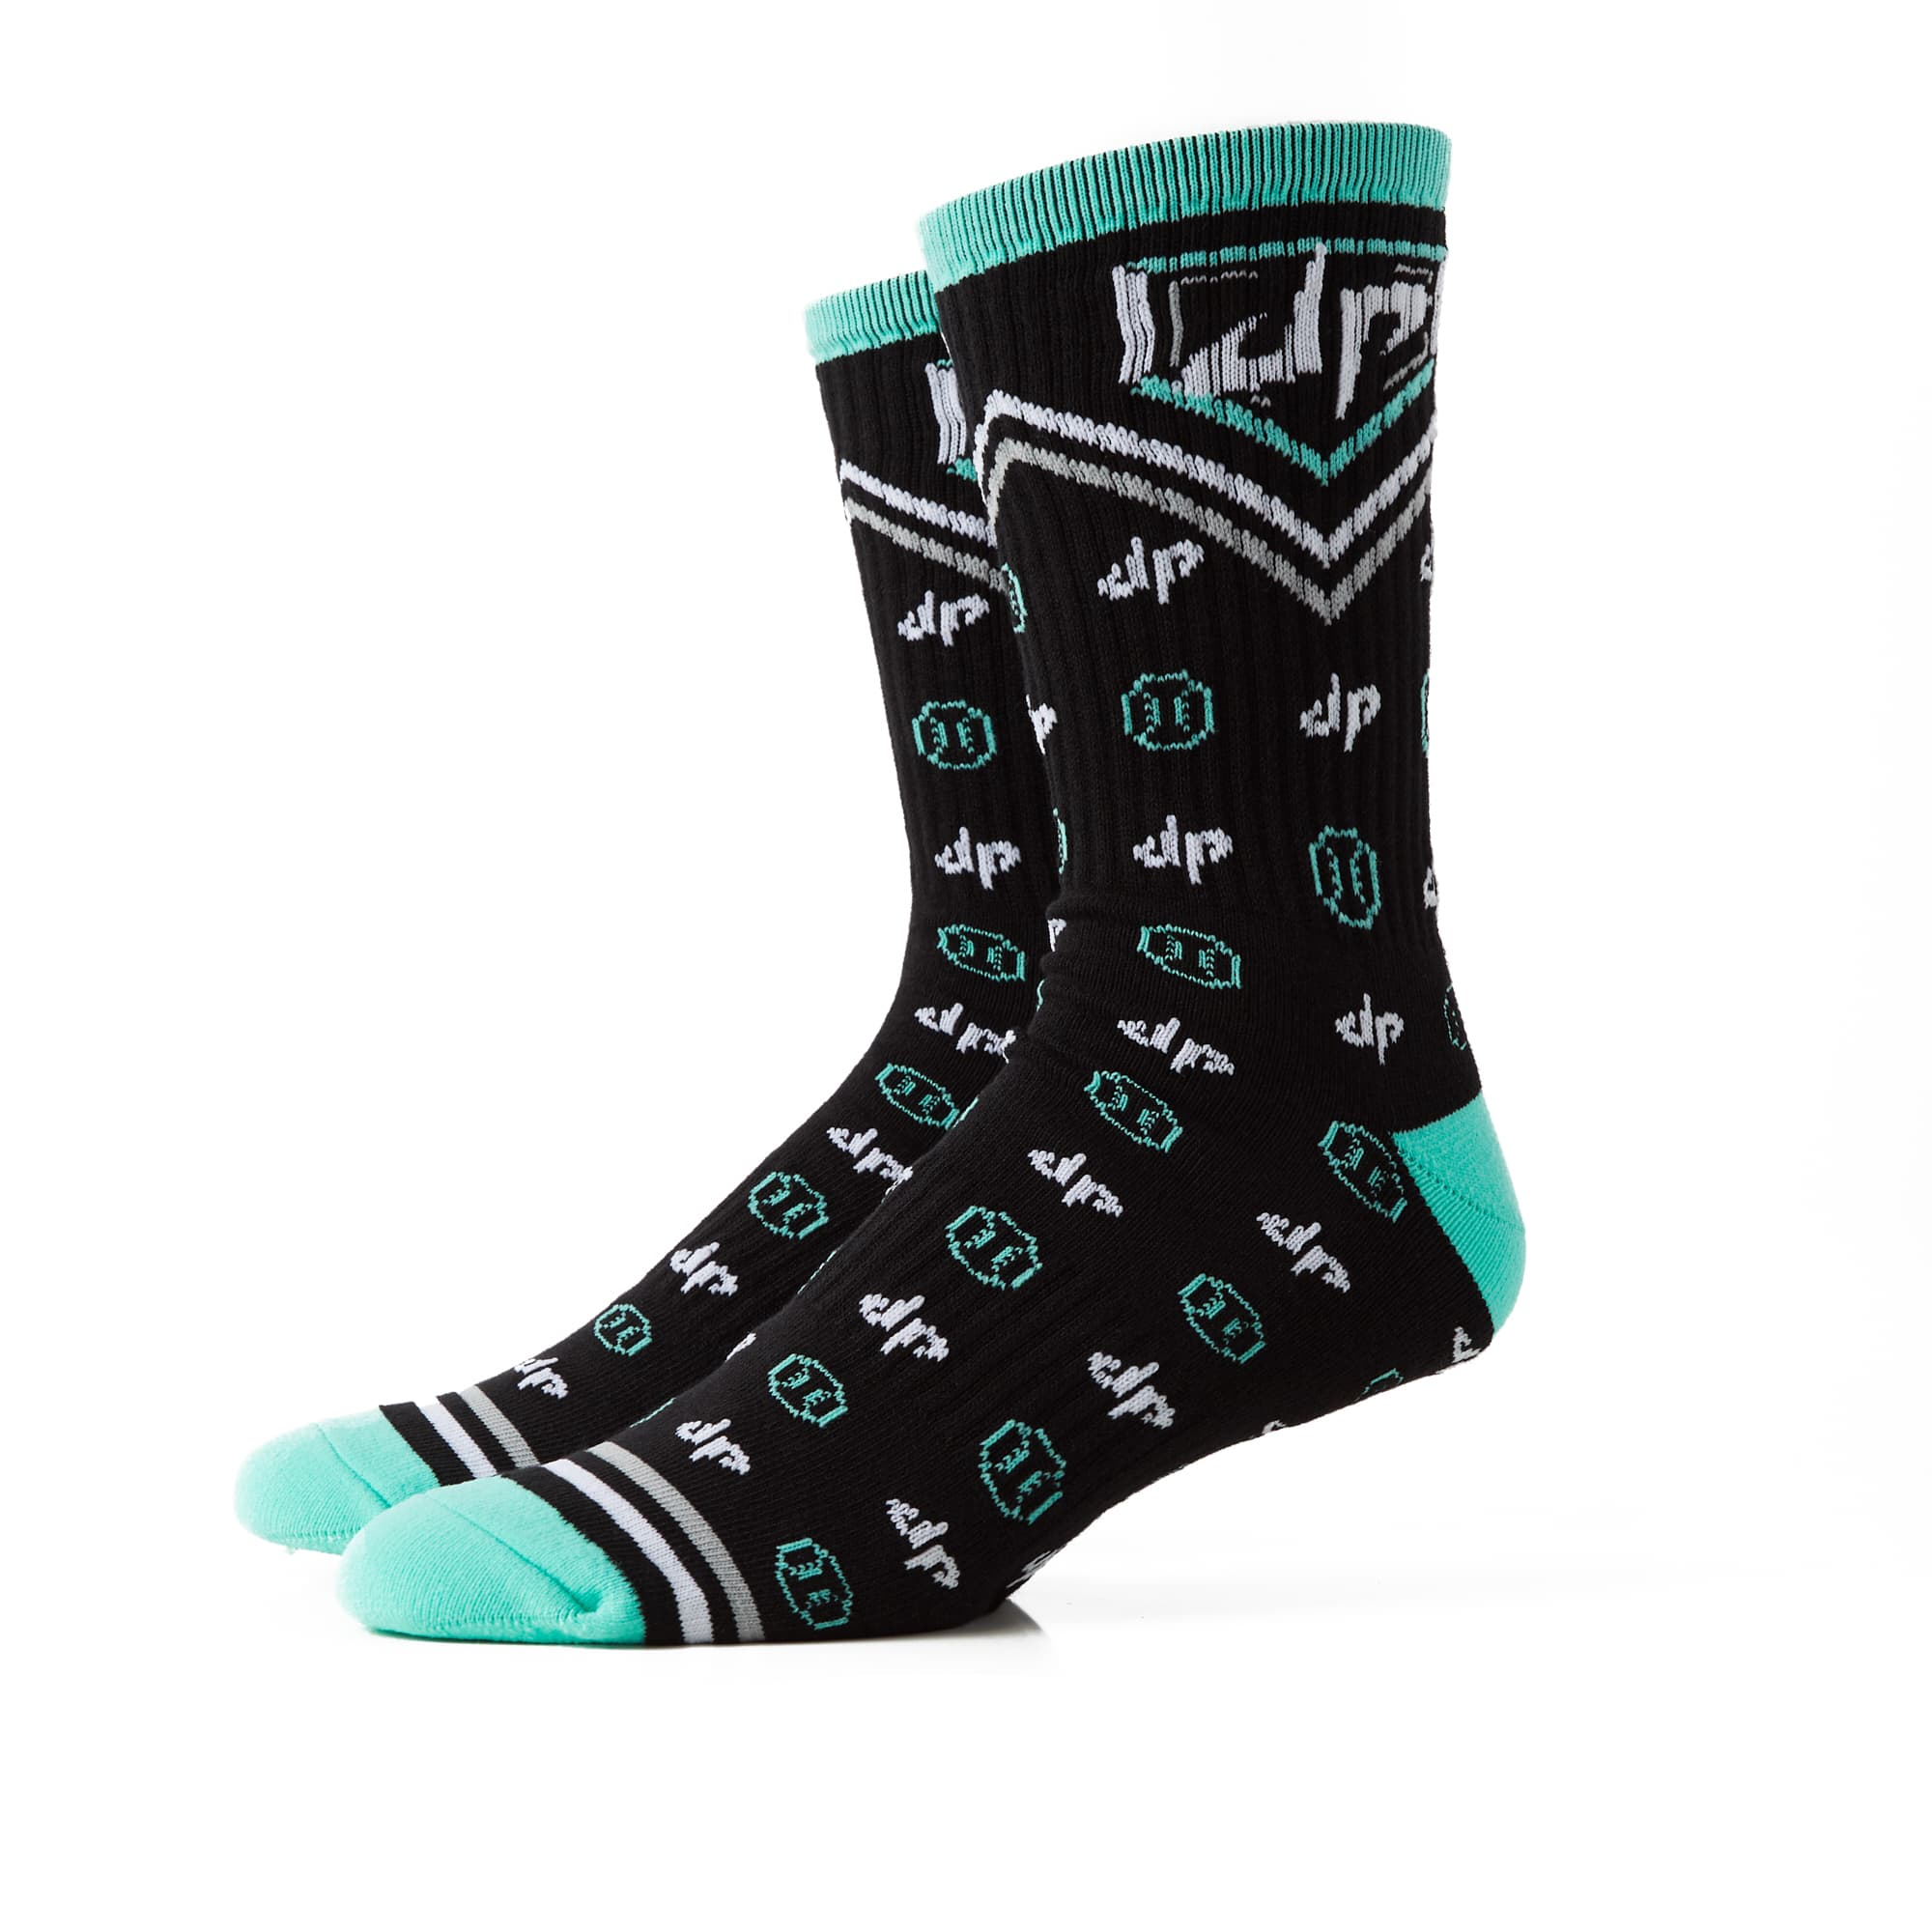 Crushing Diamonds 5 Socks